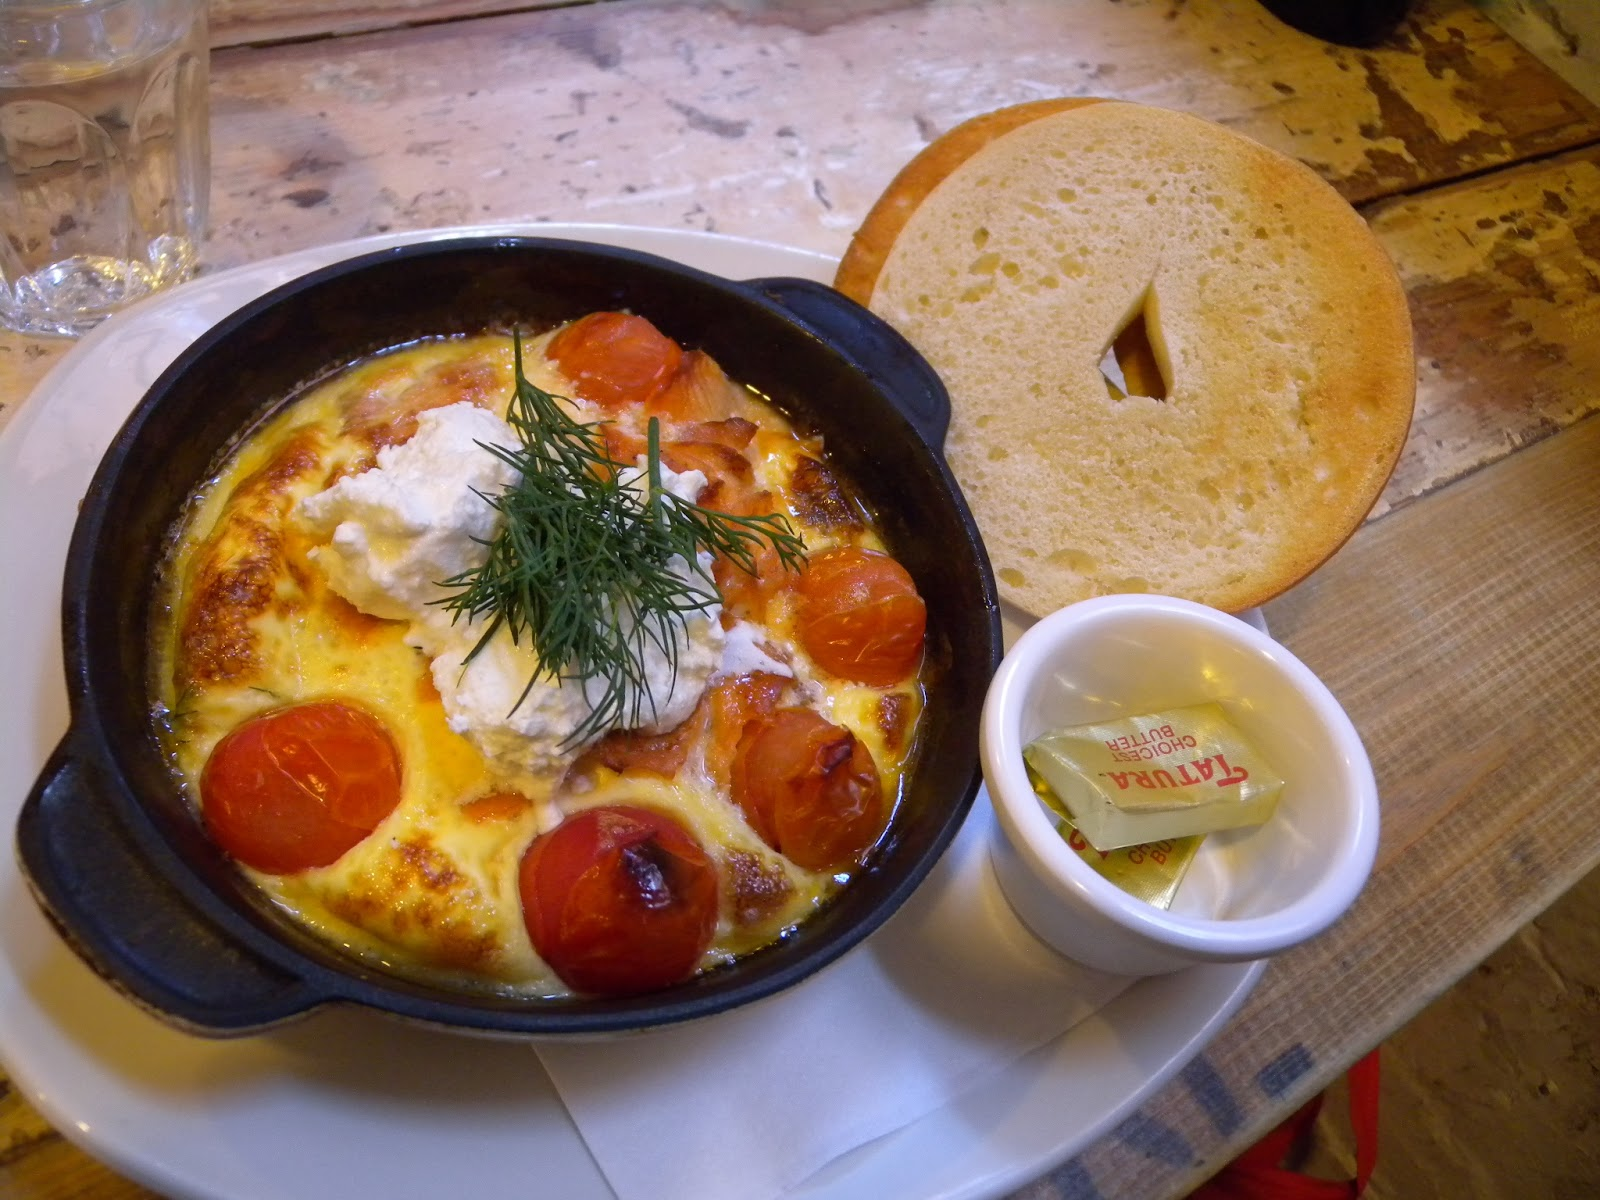 ... Baked egg scramble with salmon, fetta, cherry tomatoes and dill $16